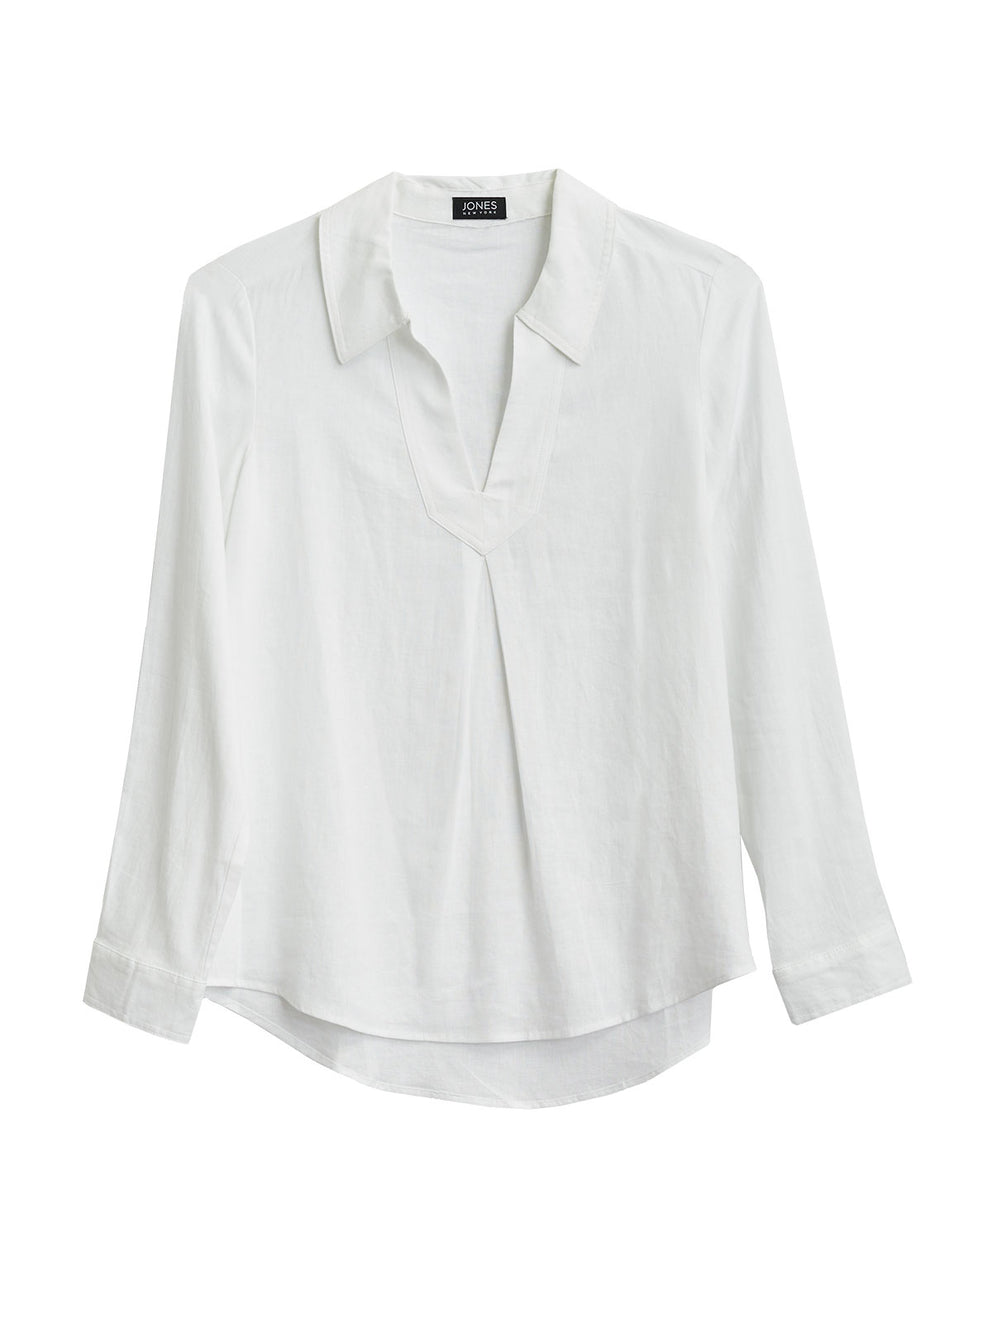 The Jones New York Pleated Popover Top in color White Linen - Image Position 1